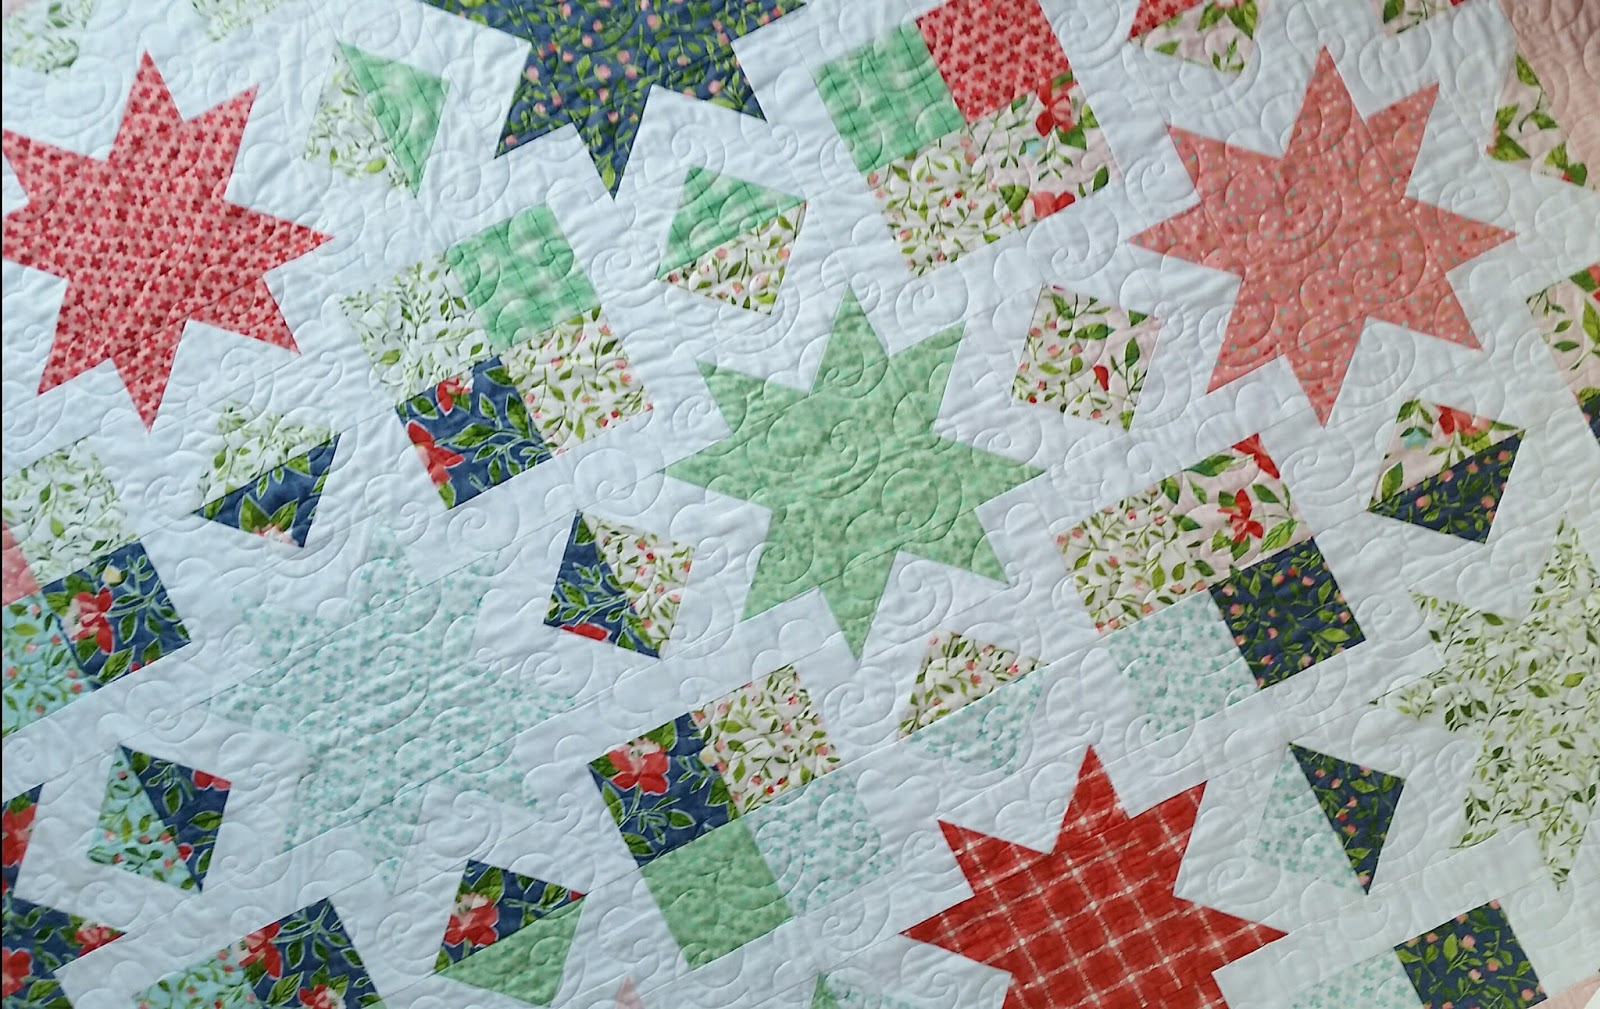 modern quarter decided quilts next we magic of s march it quilting weekend to features page called the baby mother fat quilt try edition mccall magazine daughter pattern from quick a